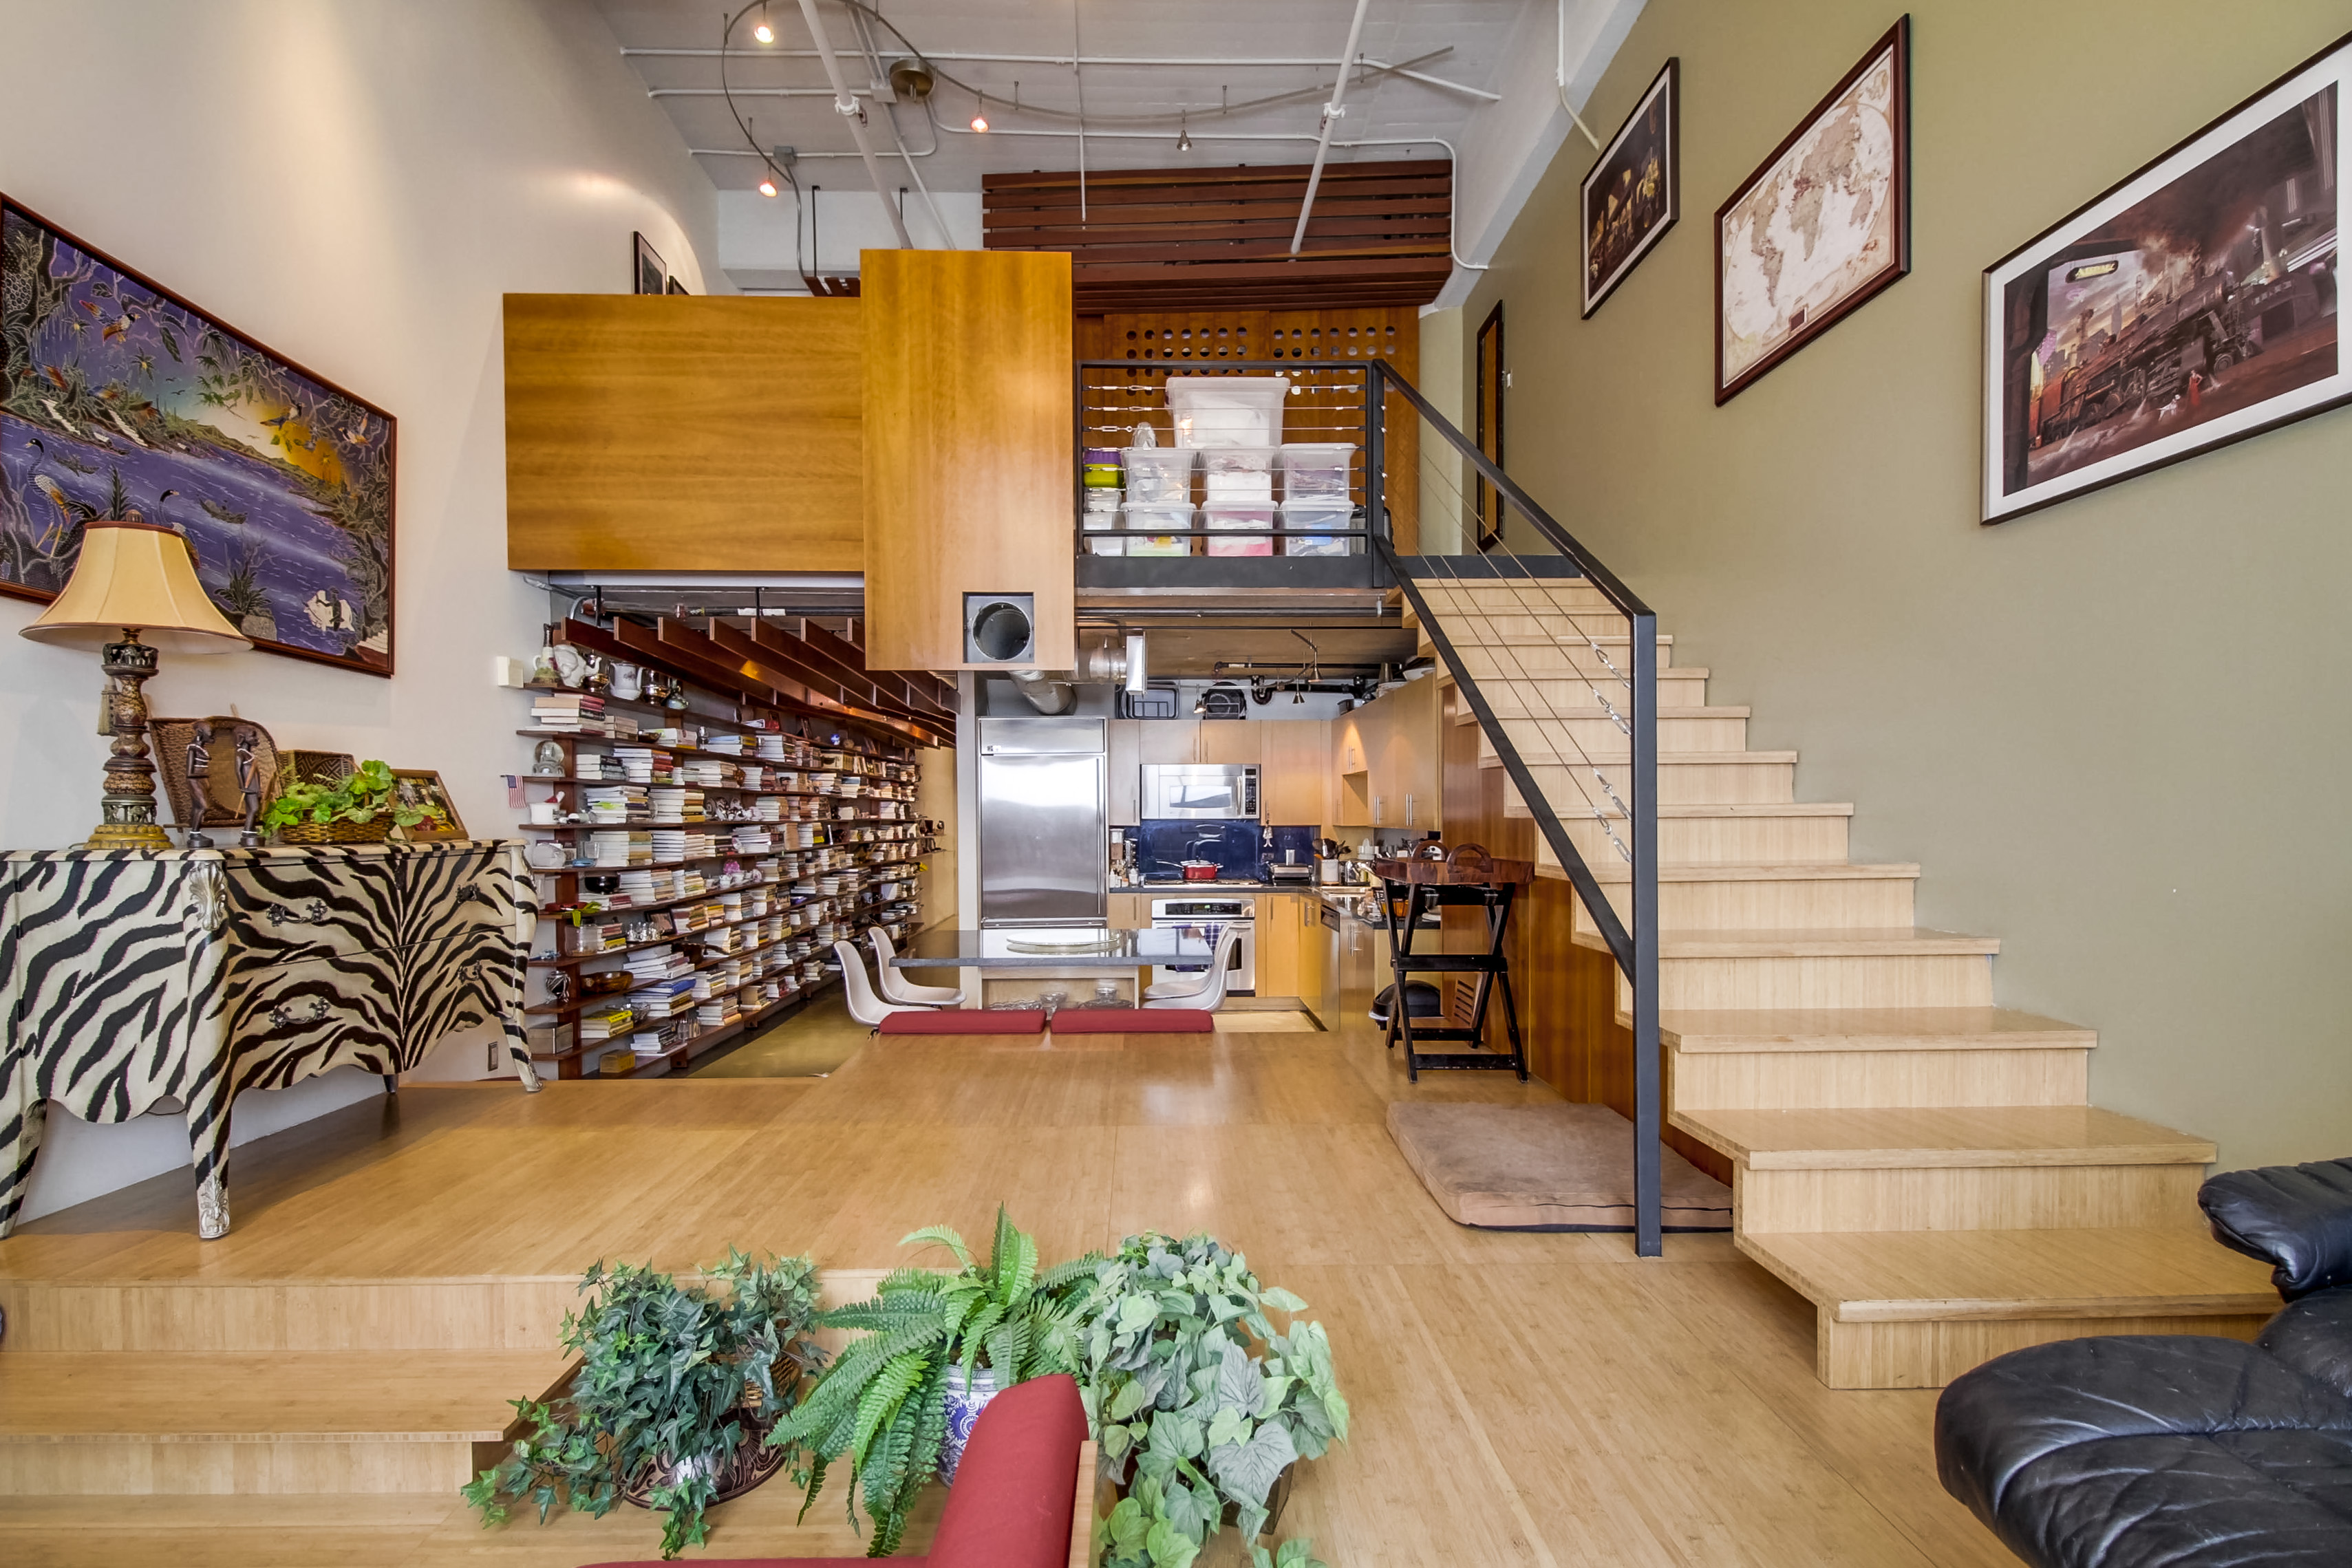 1155-s-grand-ave-404-009